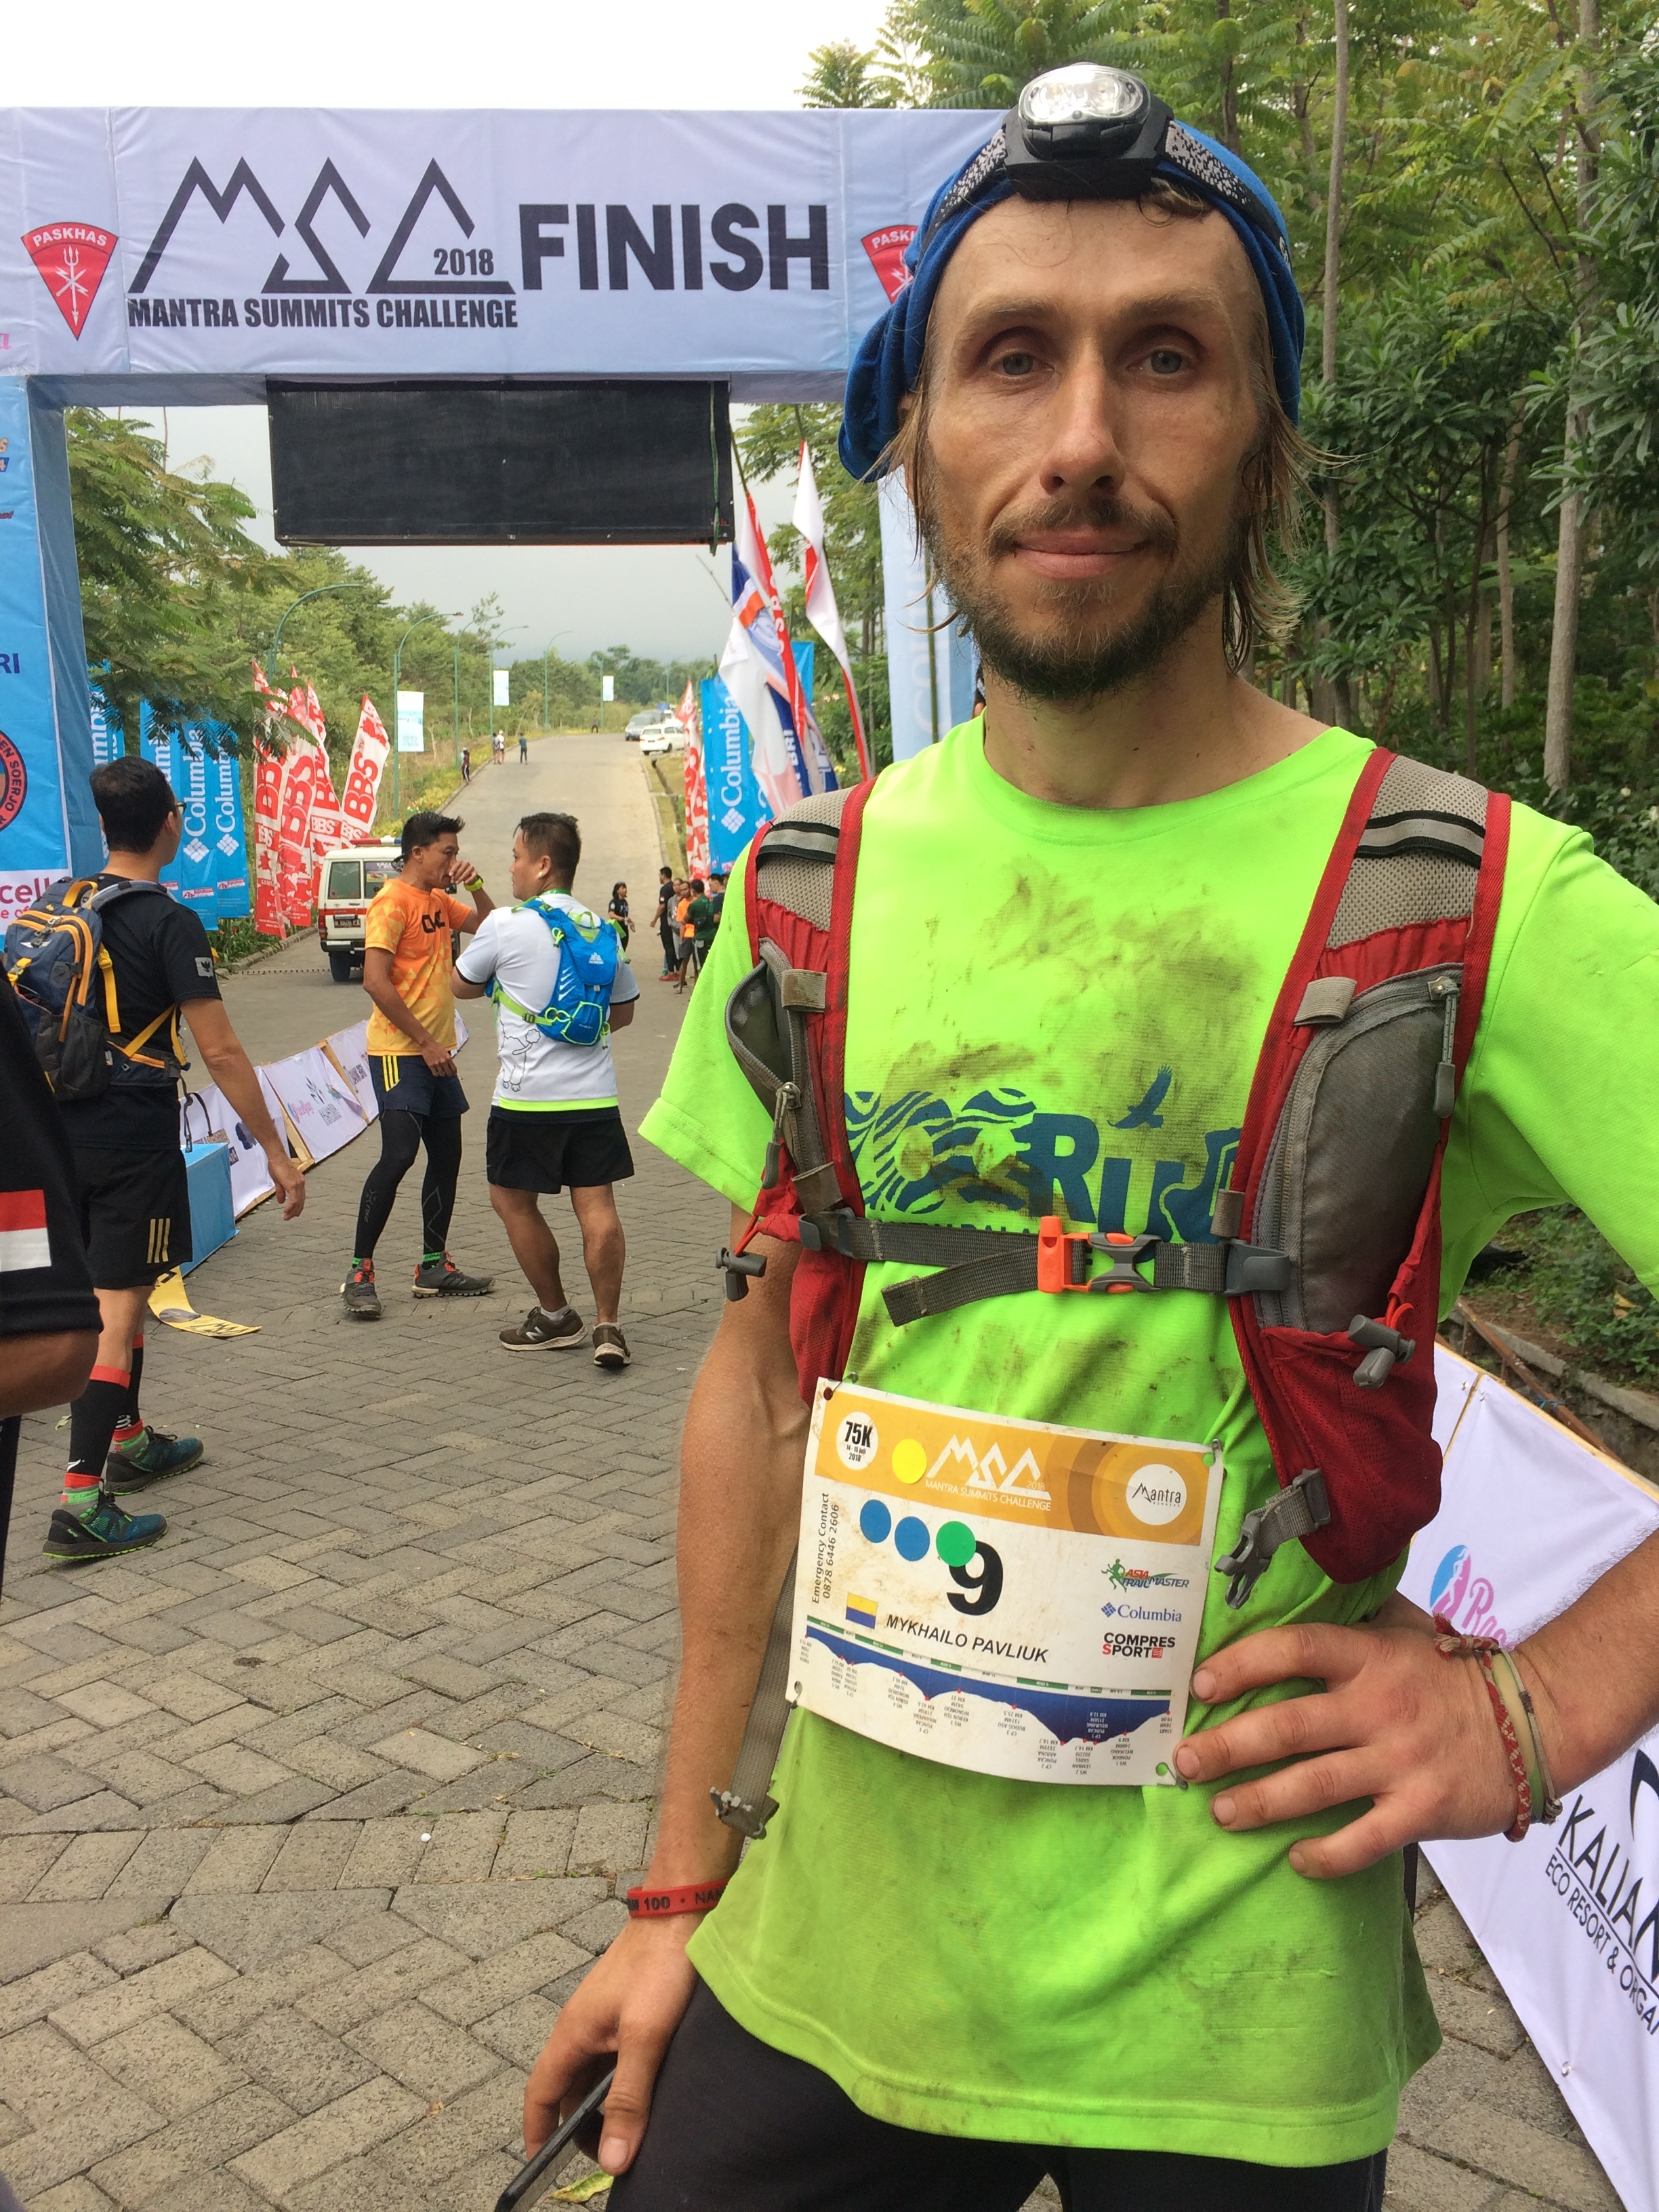 Mikhailo Pavliuk from Ukraine finished his first race of over 50 km in 4th place